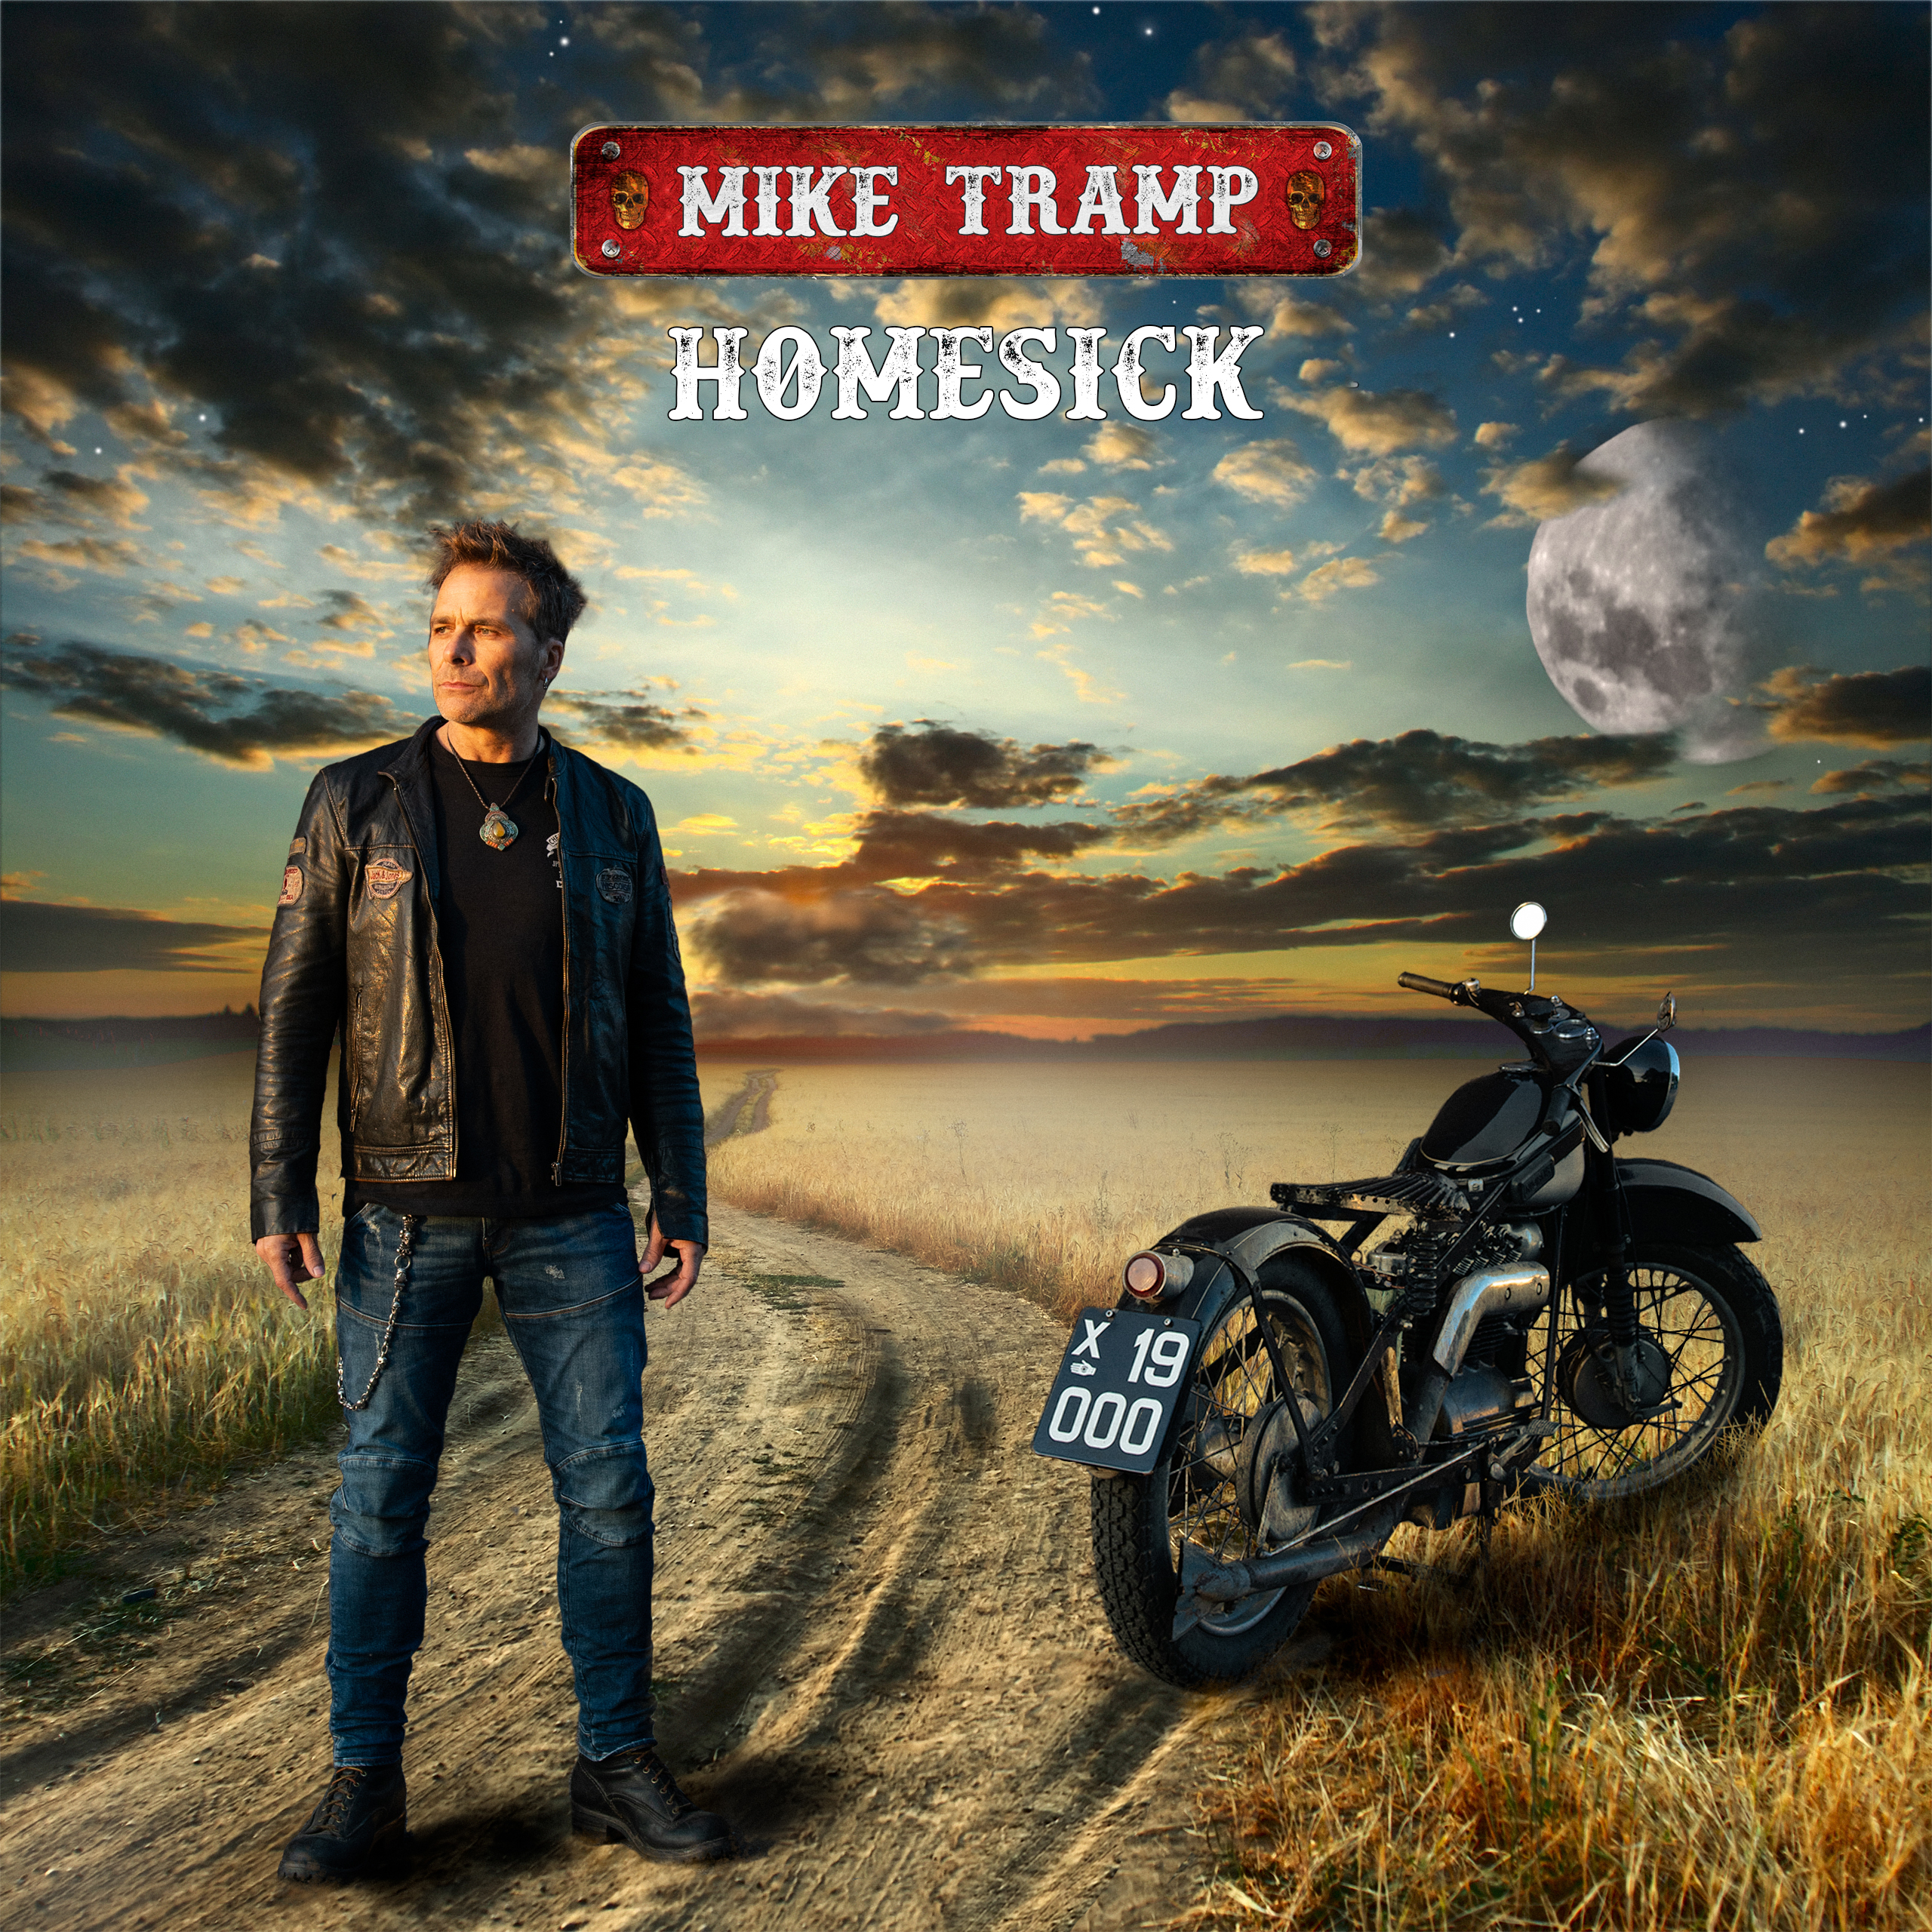 Mike Tramp – Homesick (single)